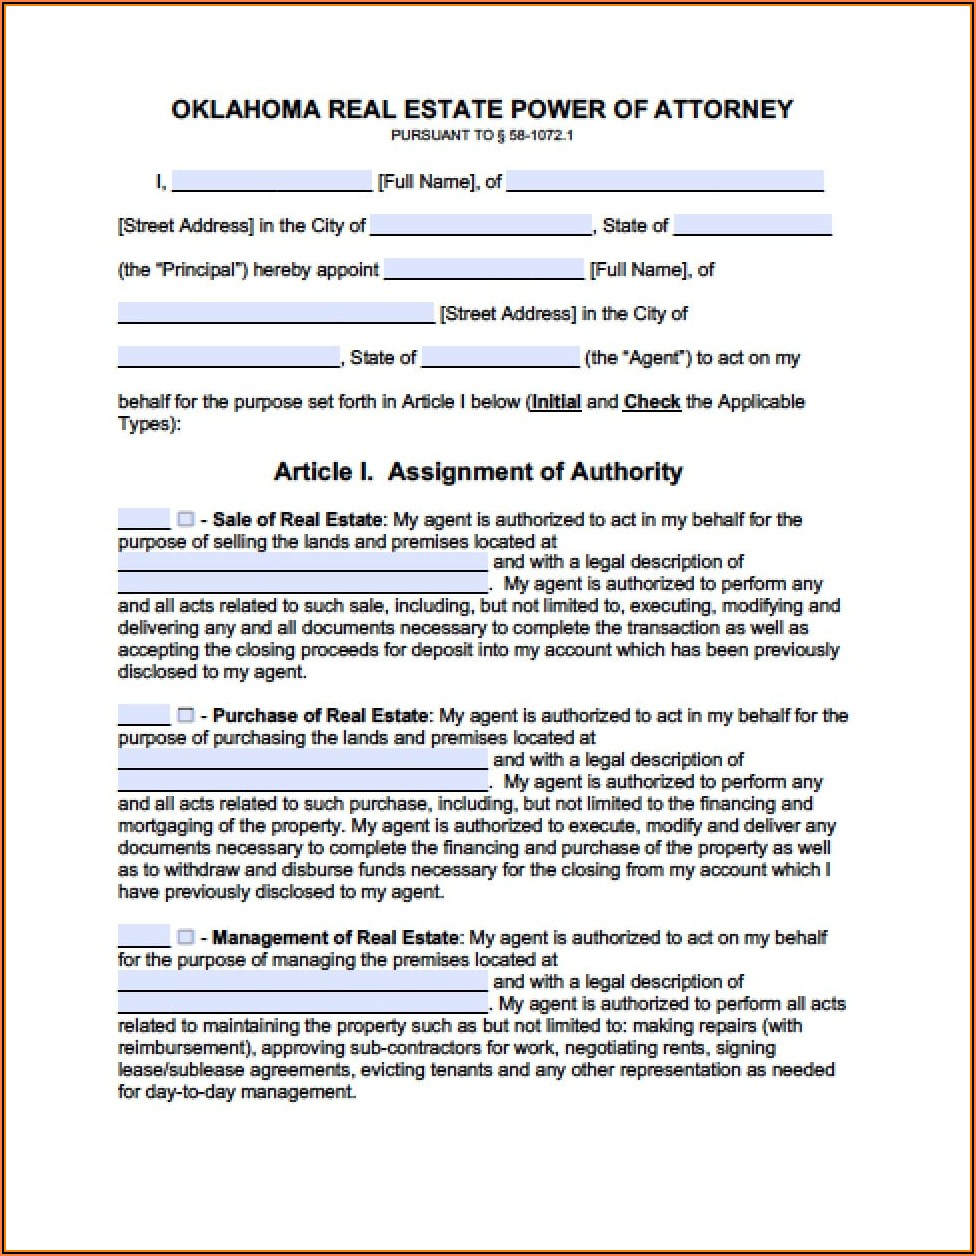 Power Of Attorney Oklahoma Form